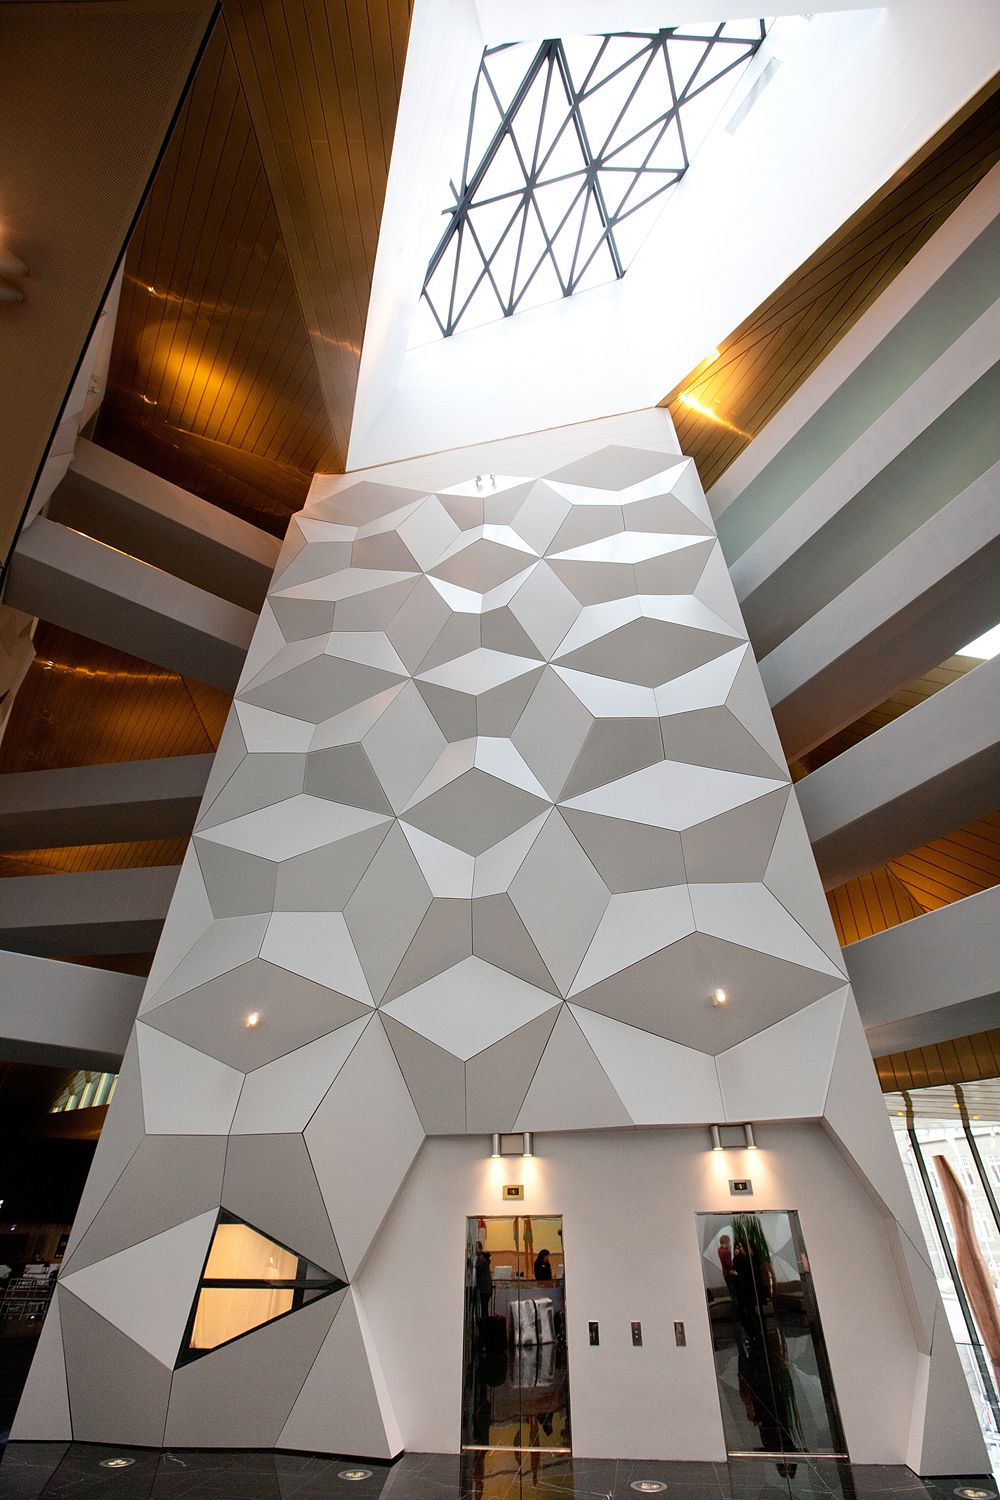 Inside detail https://www.nordicchoicehotels.no/Clarion/Clarion-Hotel-Trondheim/#